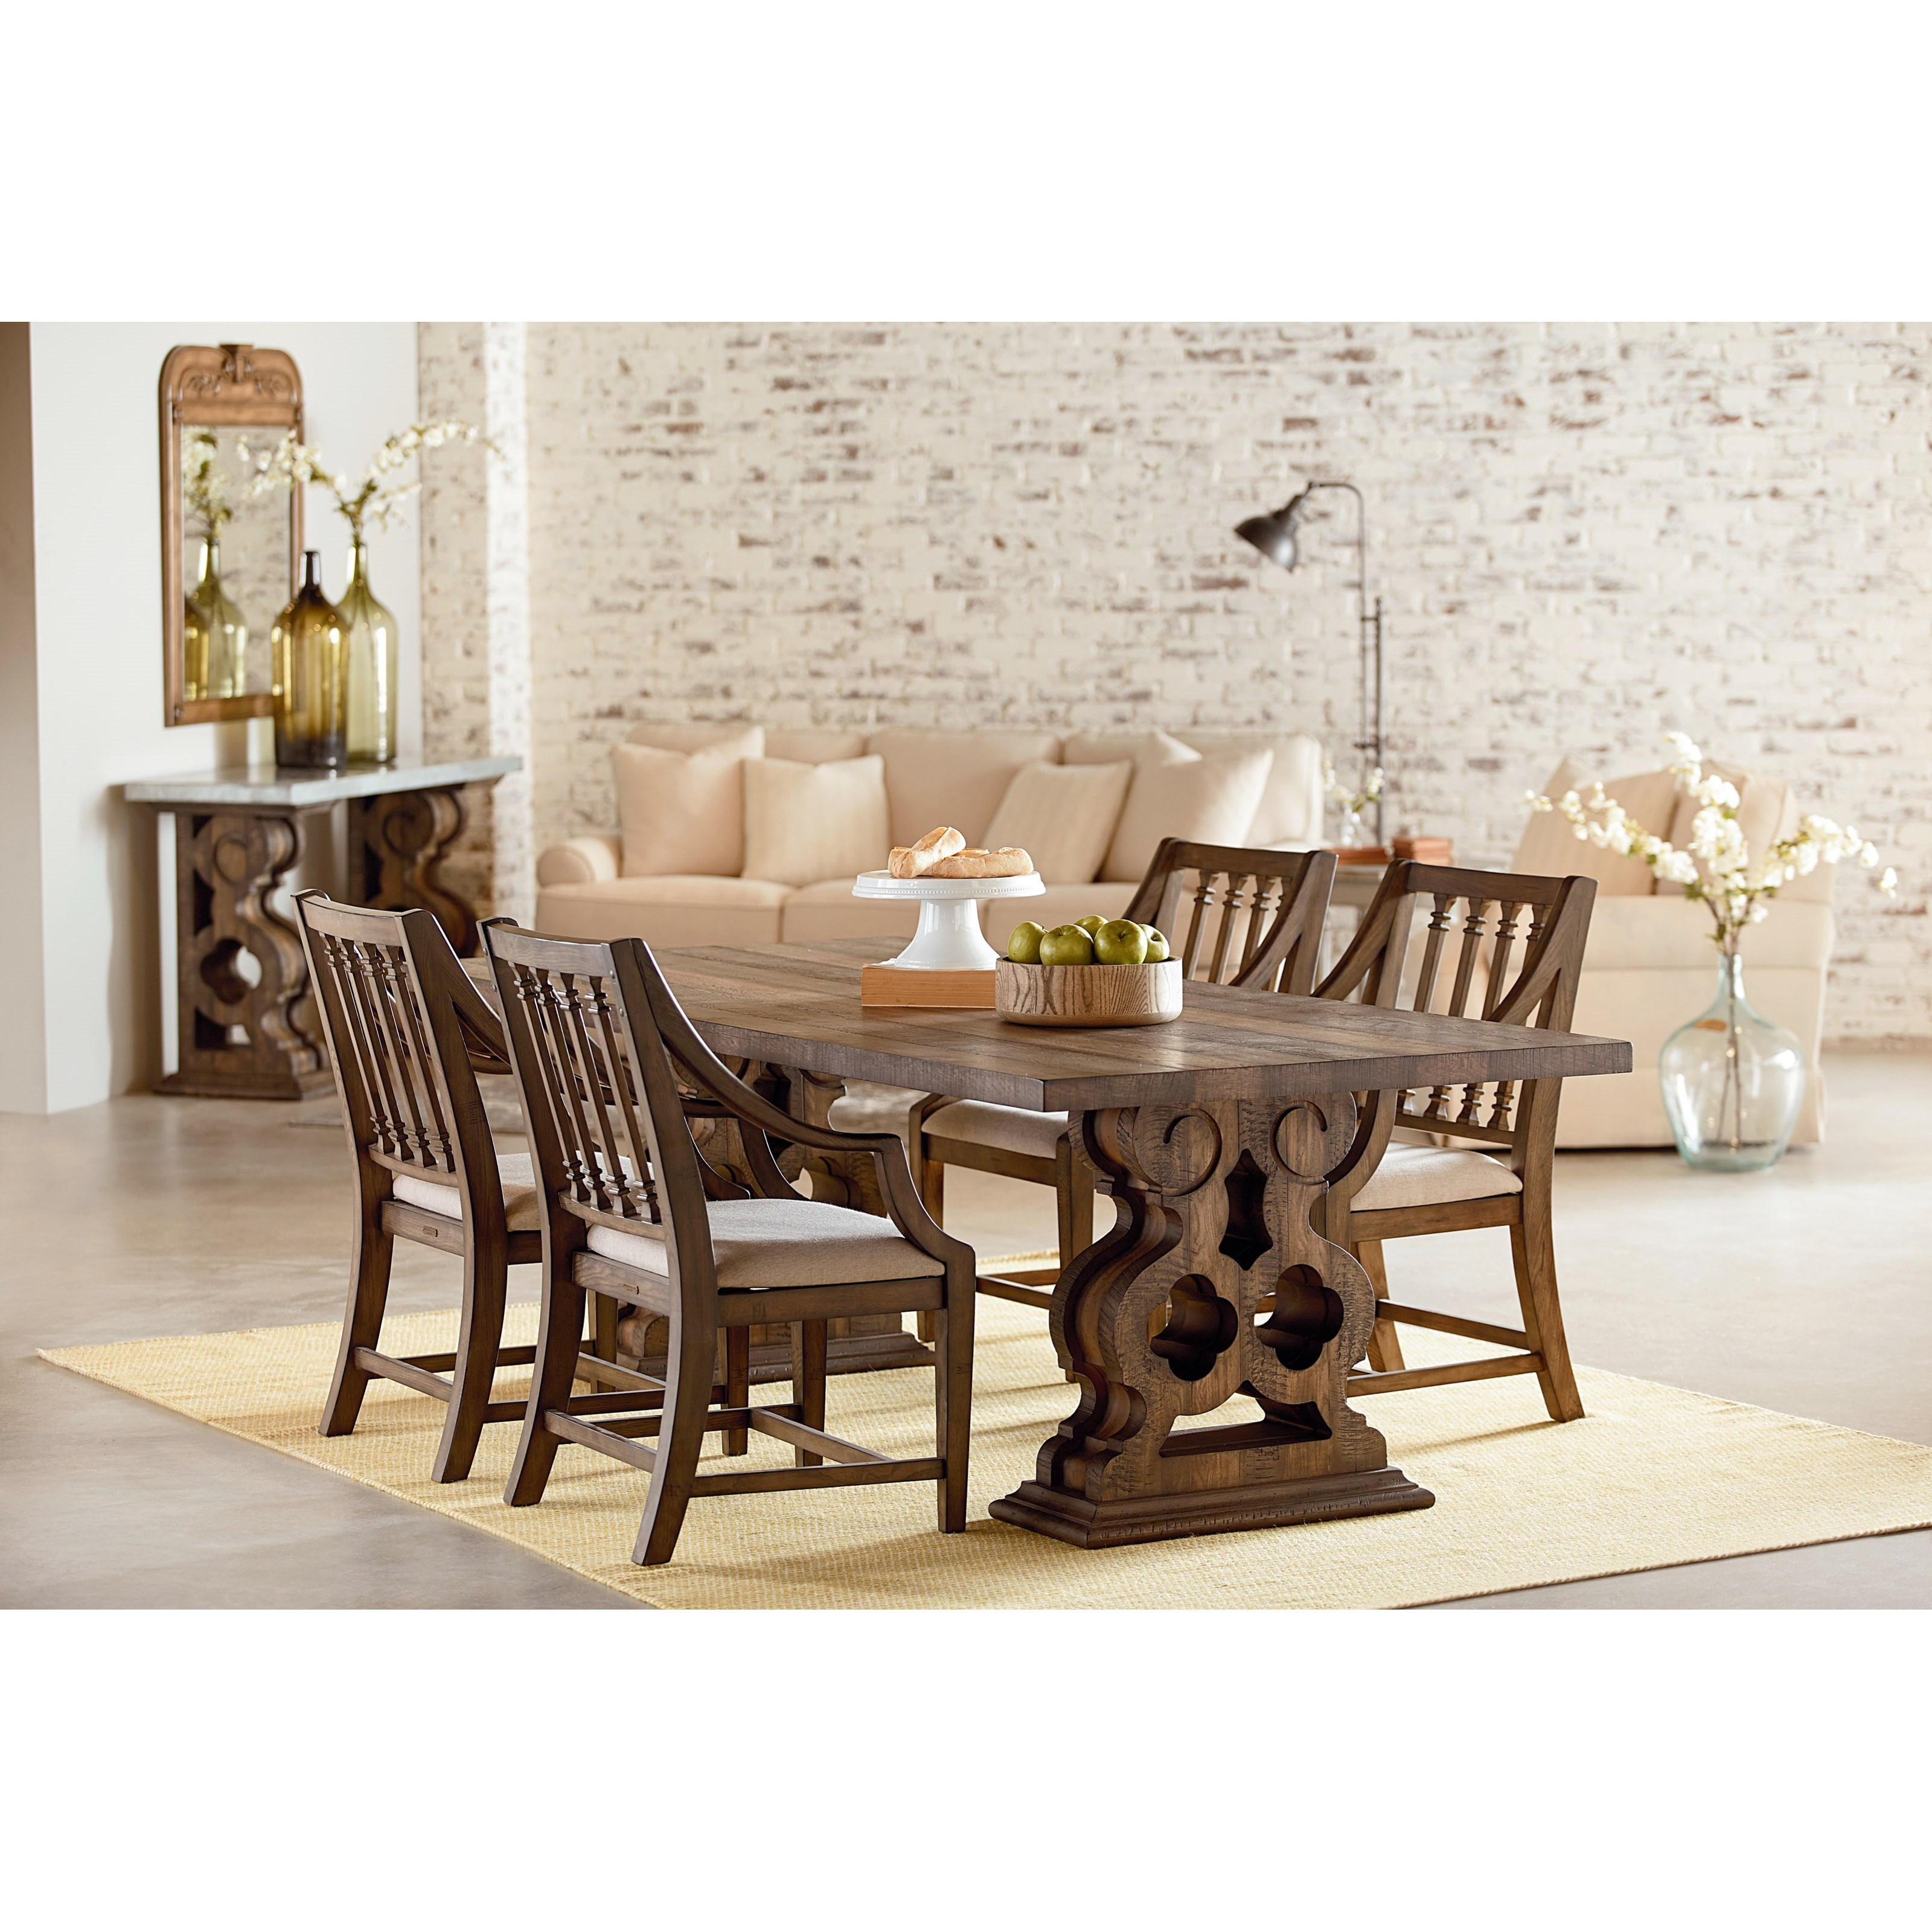 Magnolia home by joanna gaines traditional dining room for Traditional dining table